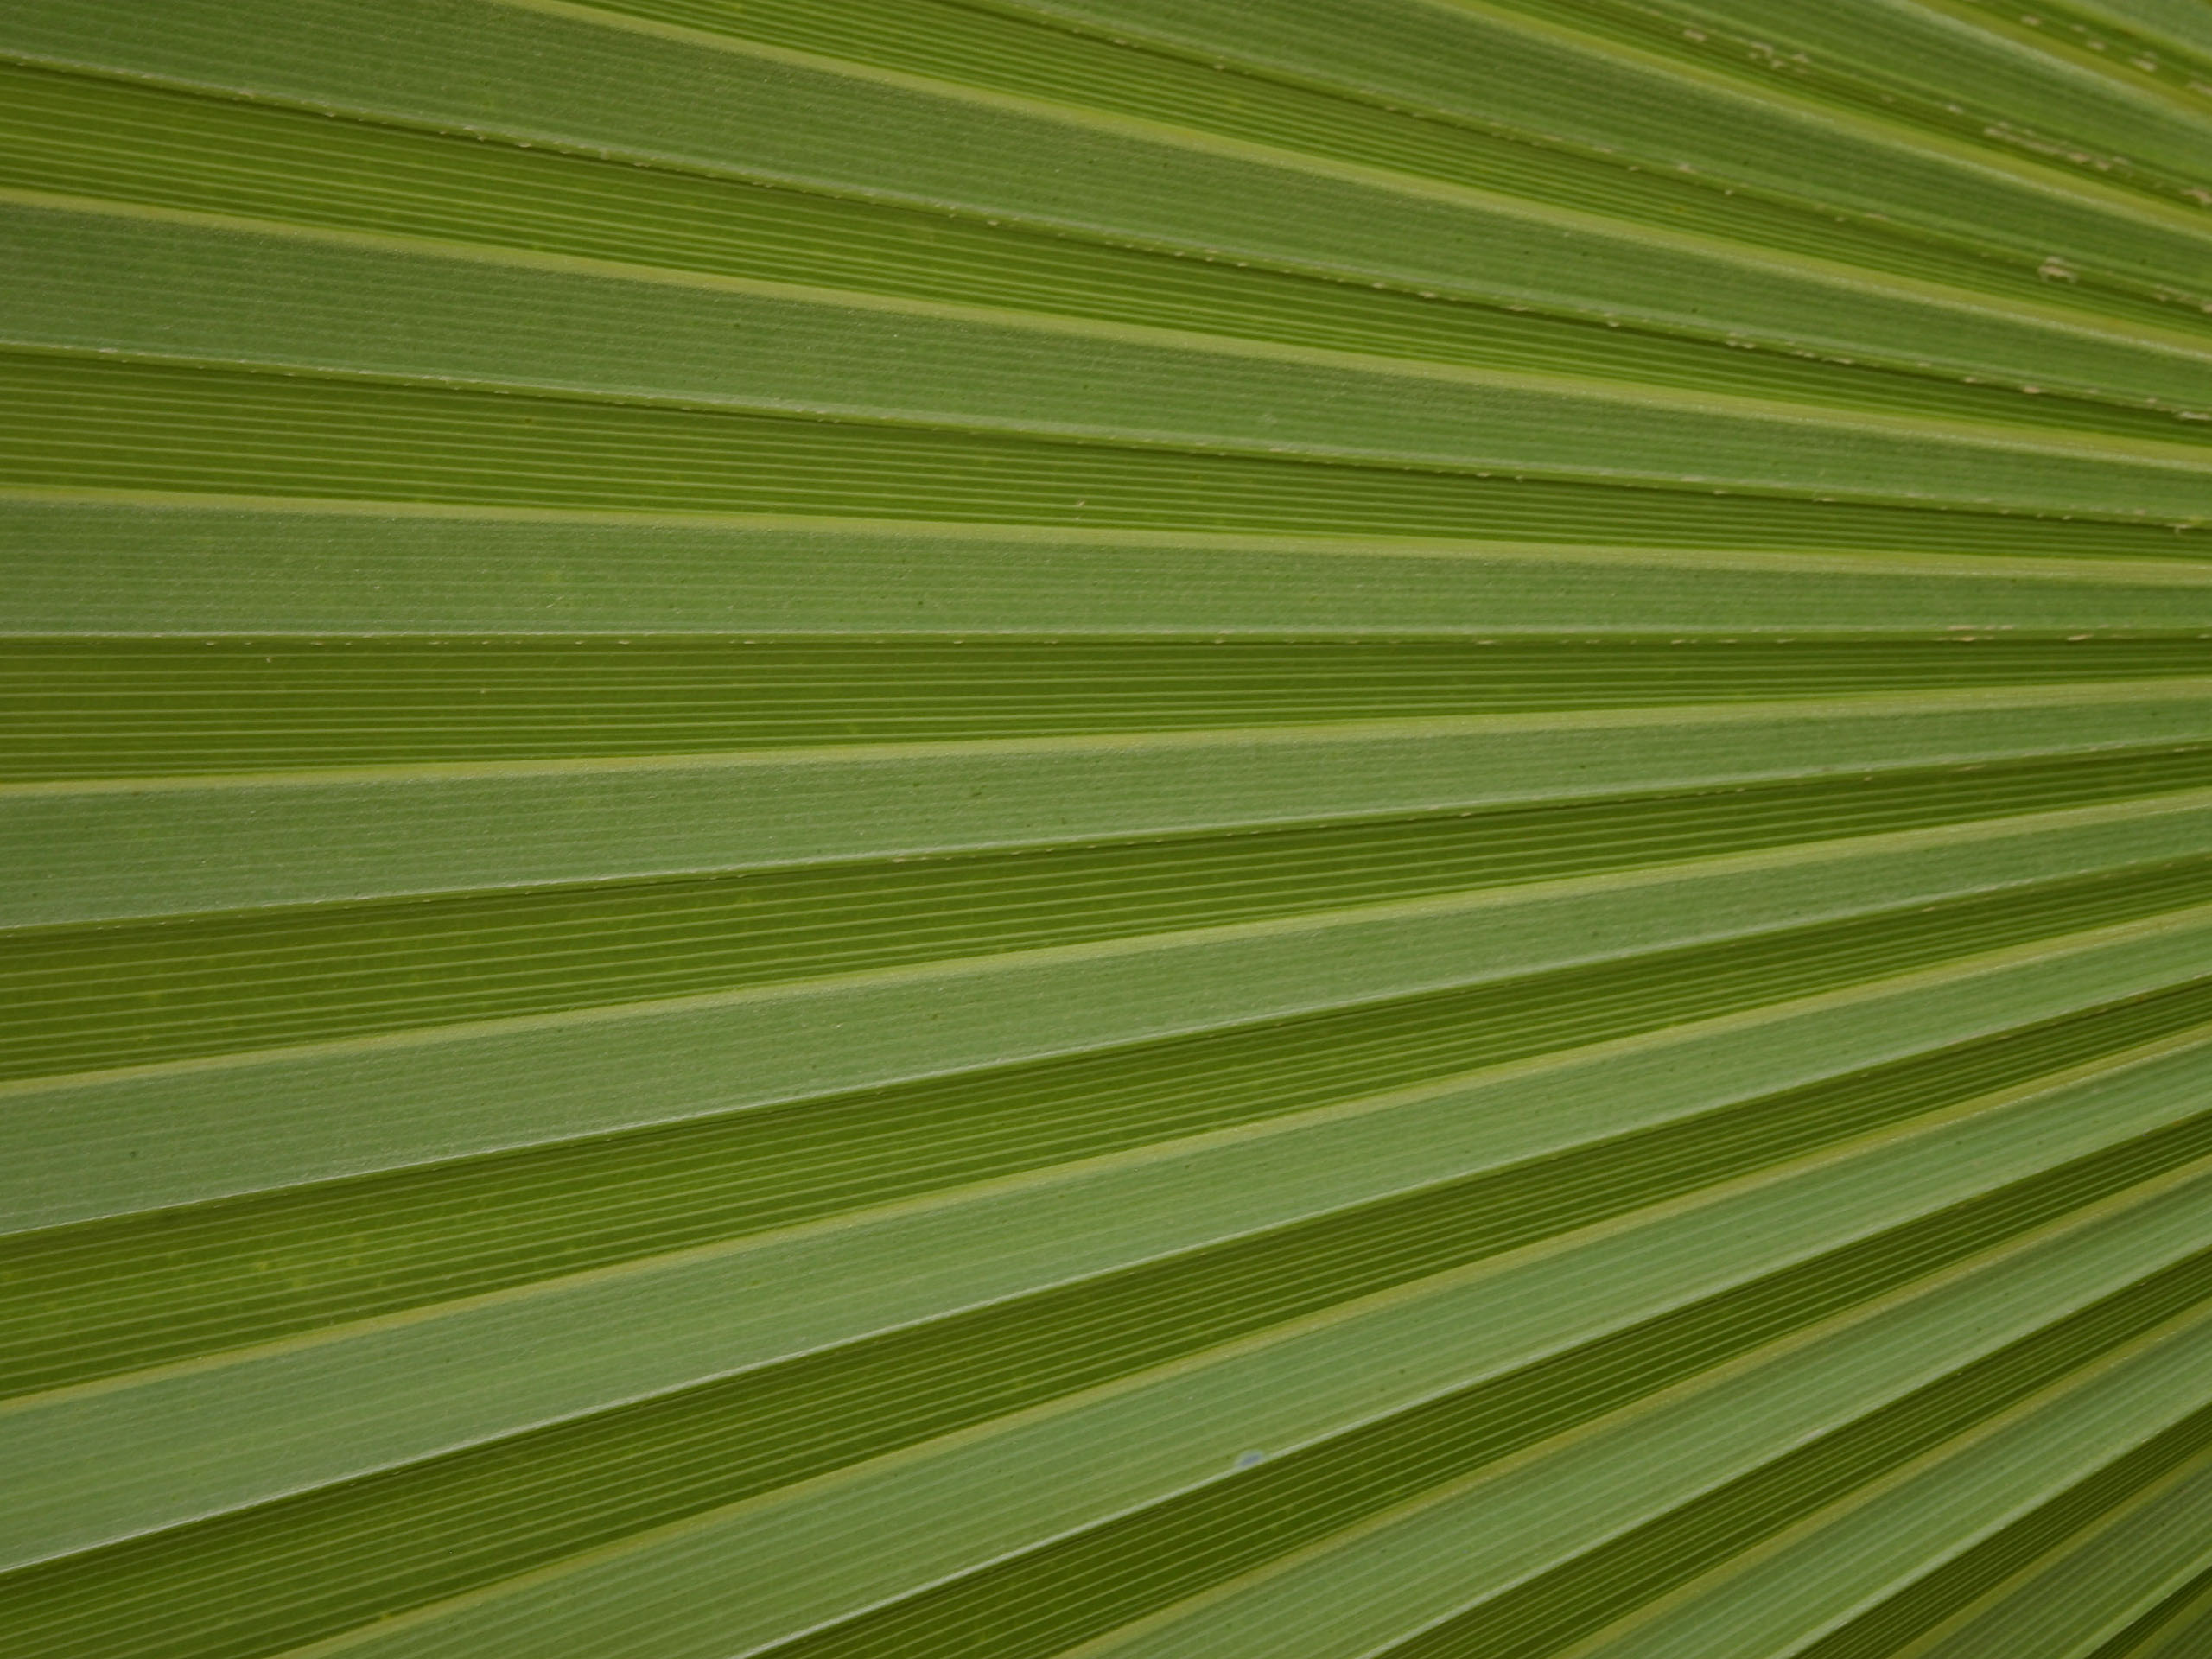 leaf palm, green leaf, download photo, texture, green leave texture, background